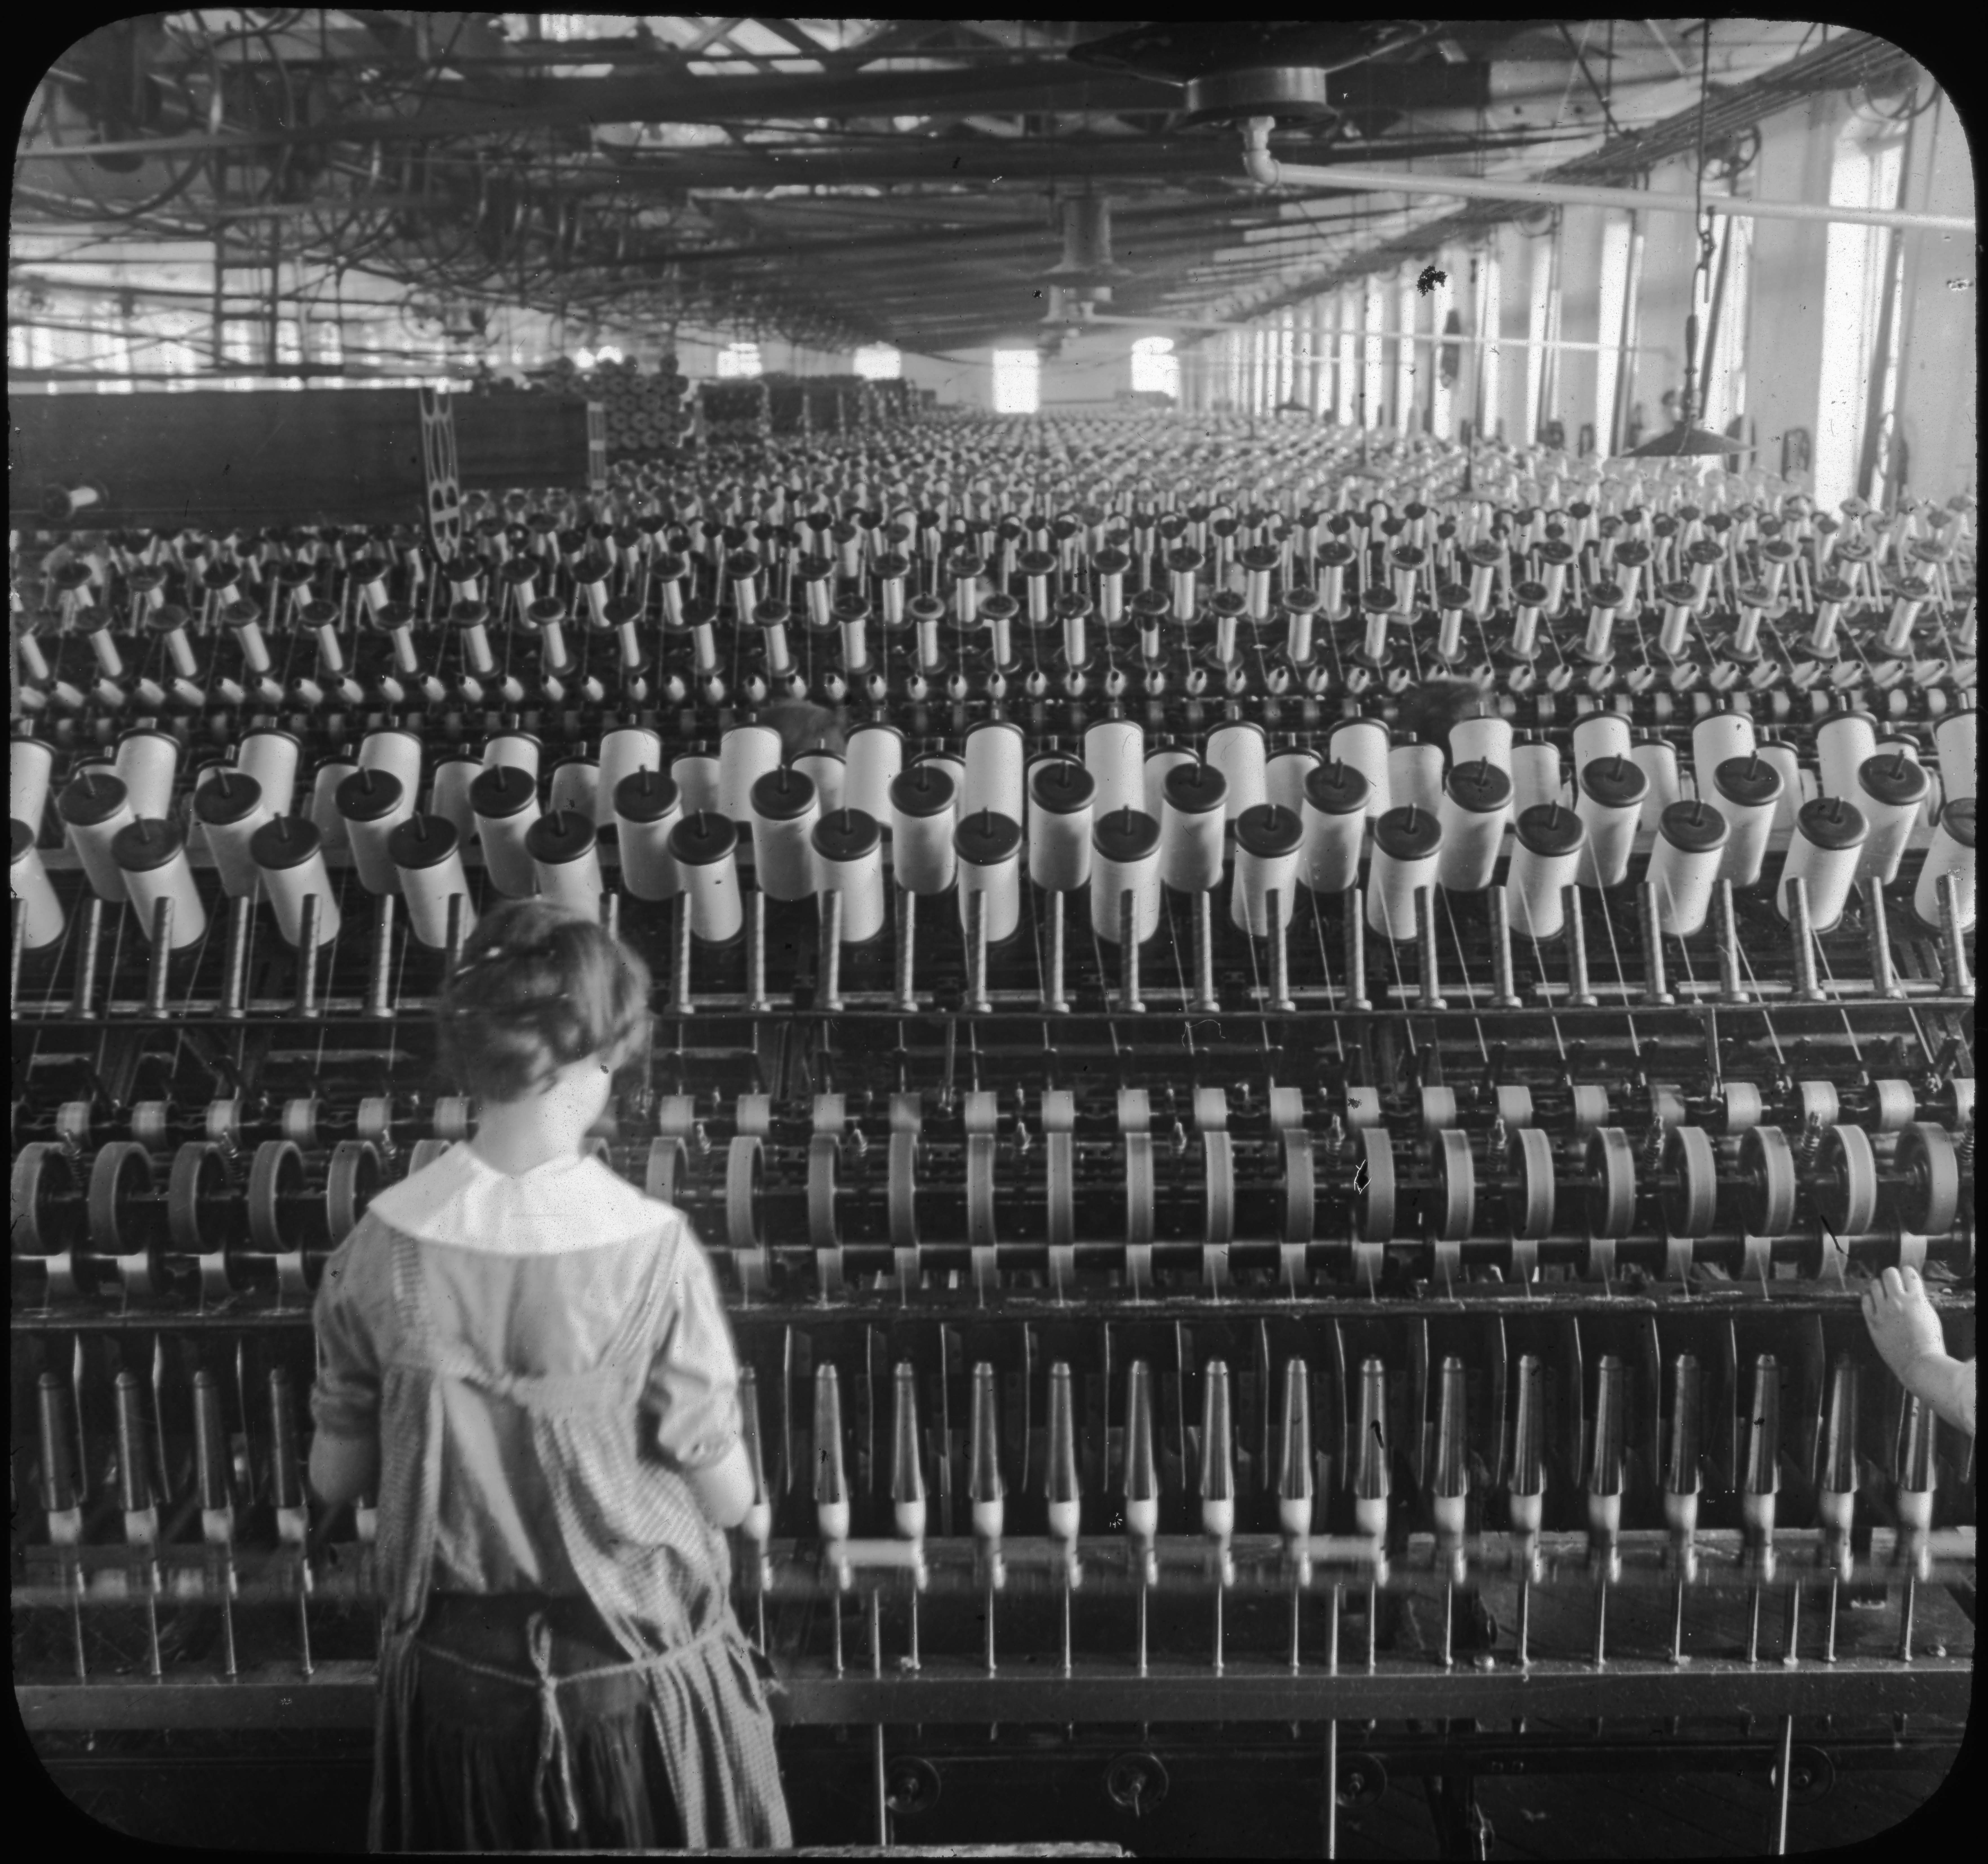 Spinning Room, Winding Bobbins with Woolen Yarn, Phila. Pa.